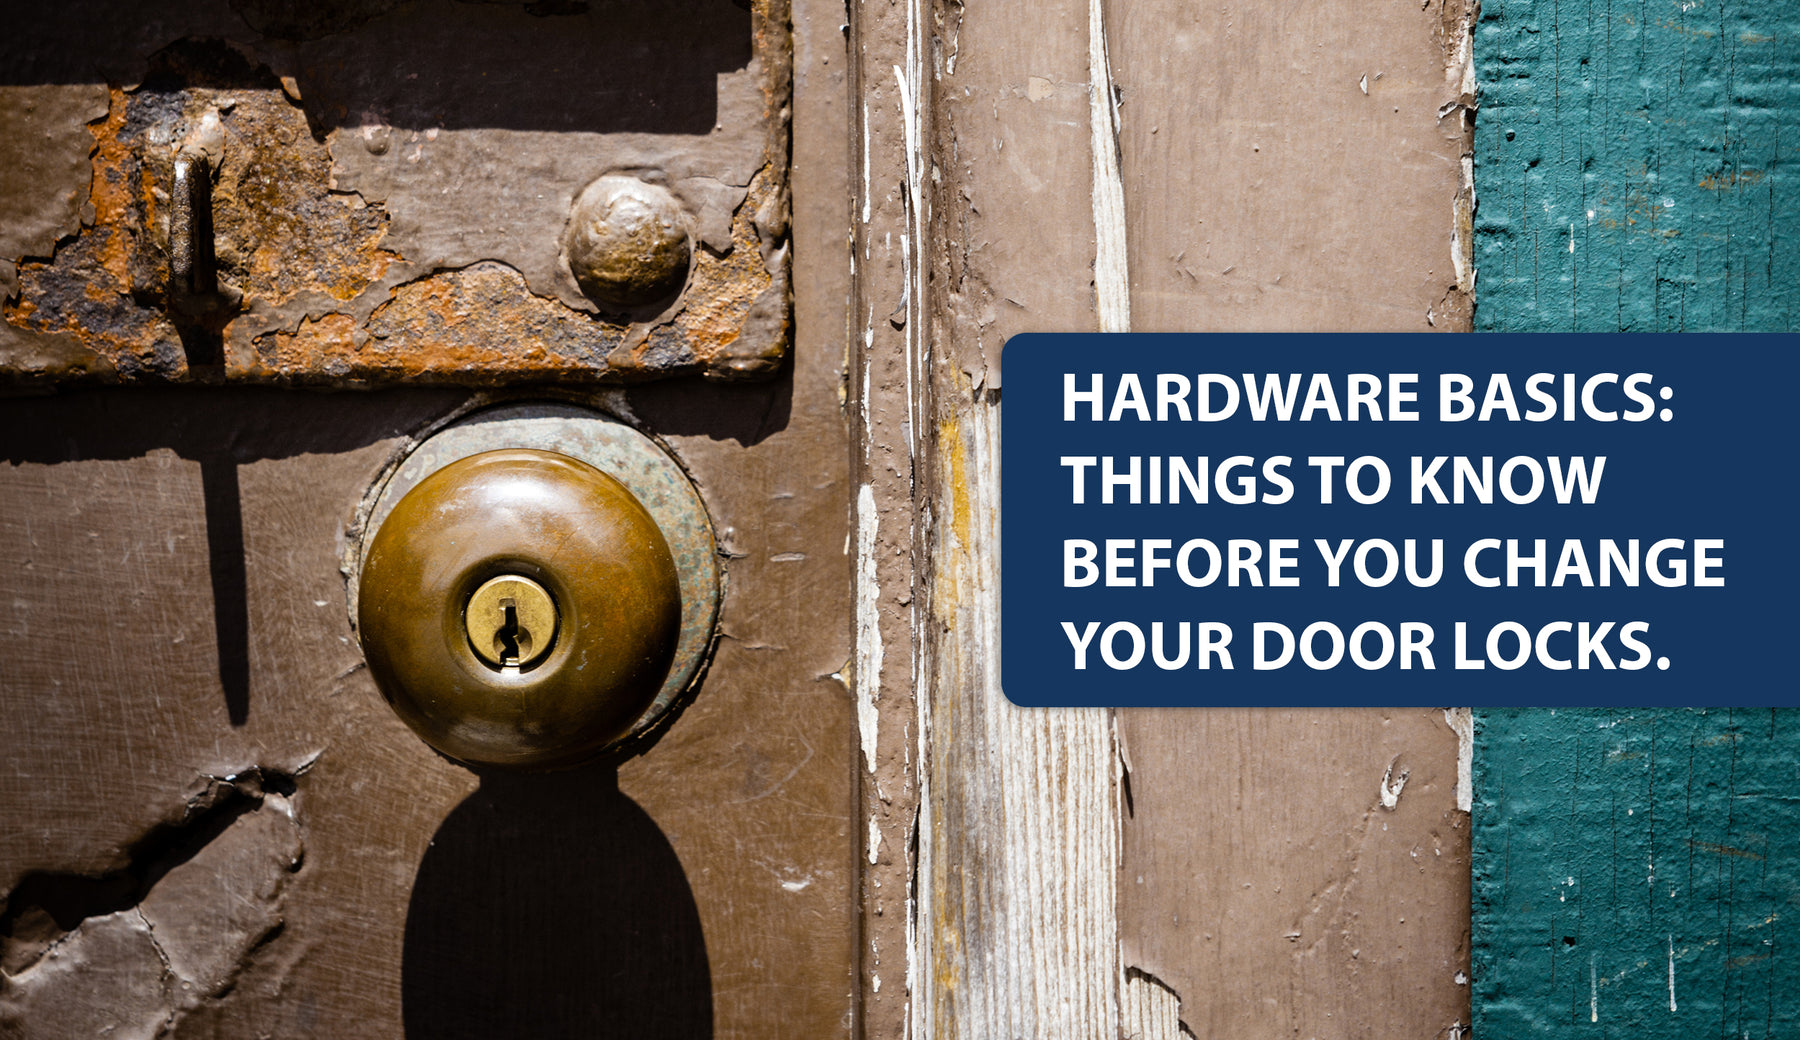 Hardware Basics: Things to Know Before You Change Your Locks